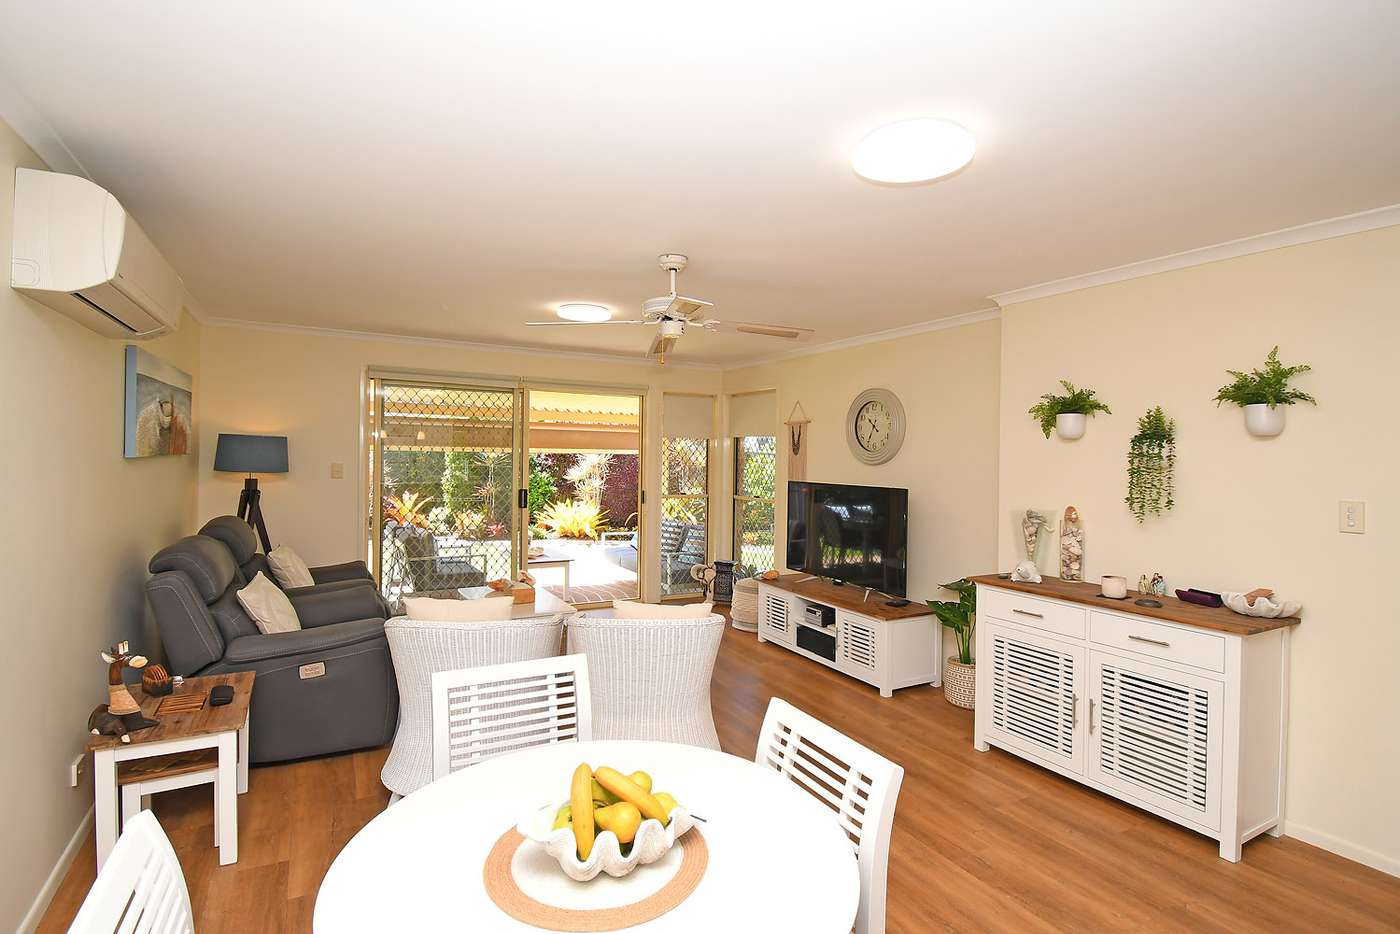 Sixth view of Homely house listing, 6 Jonwest Close, Torquay QLD 4655